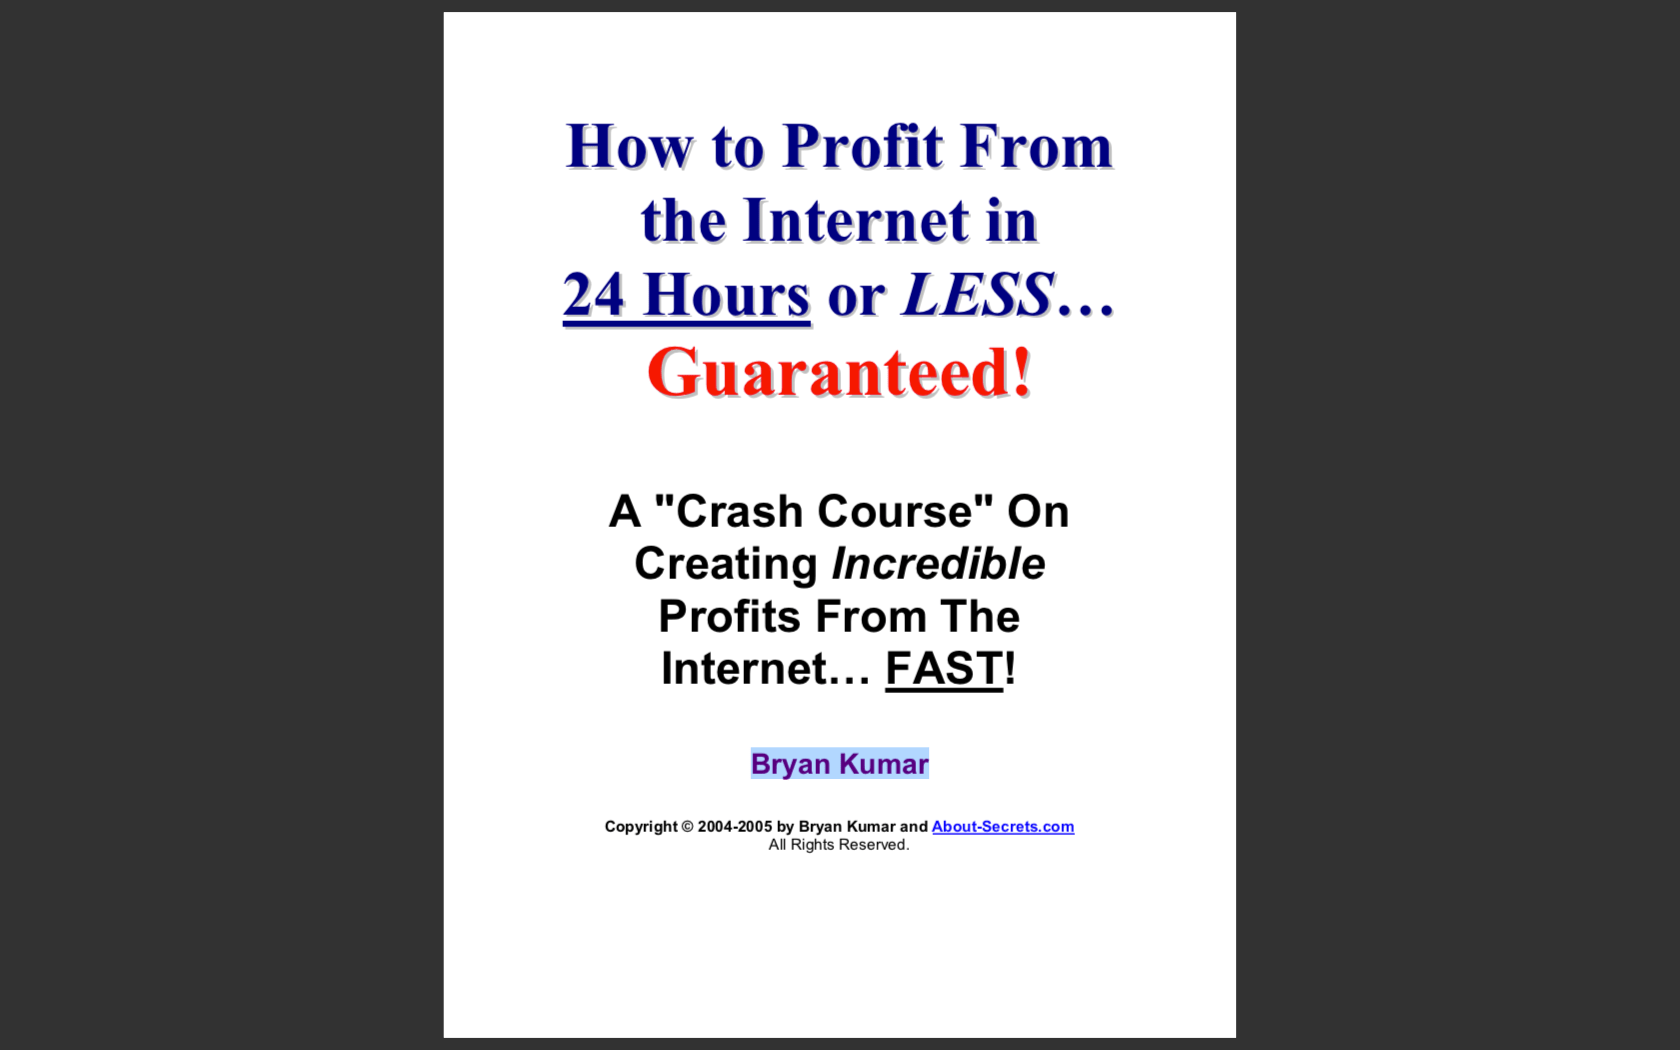 Download How to Profit From How to Profit From the Internet in the Internet in 24 Hours or LESS... 24 Hours or LESS...  Guaranteed! Guaranteed!